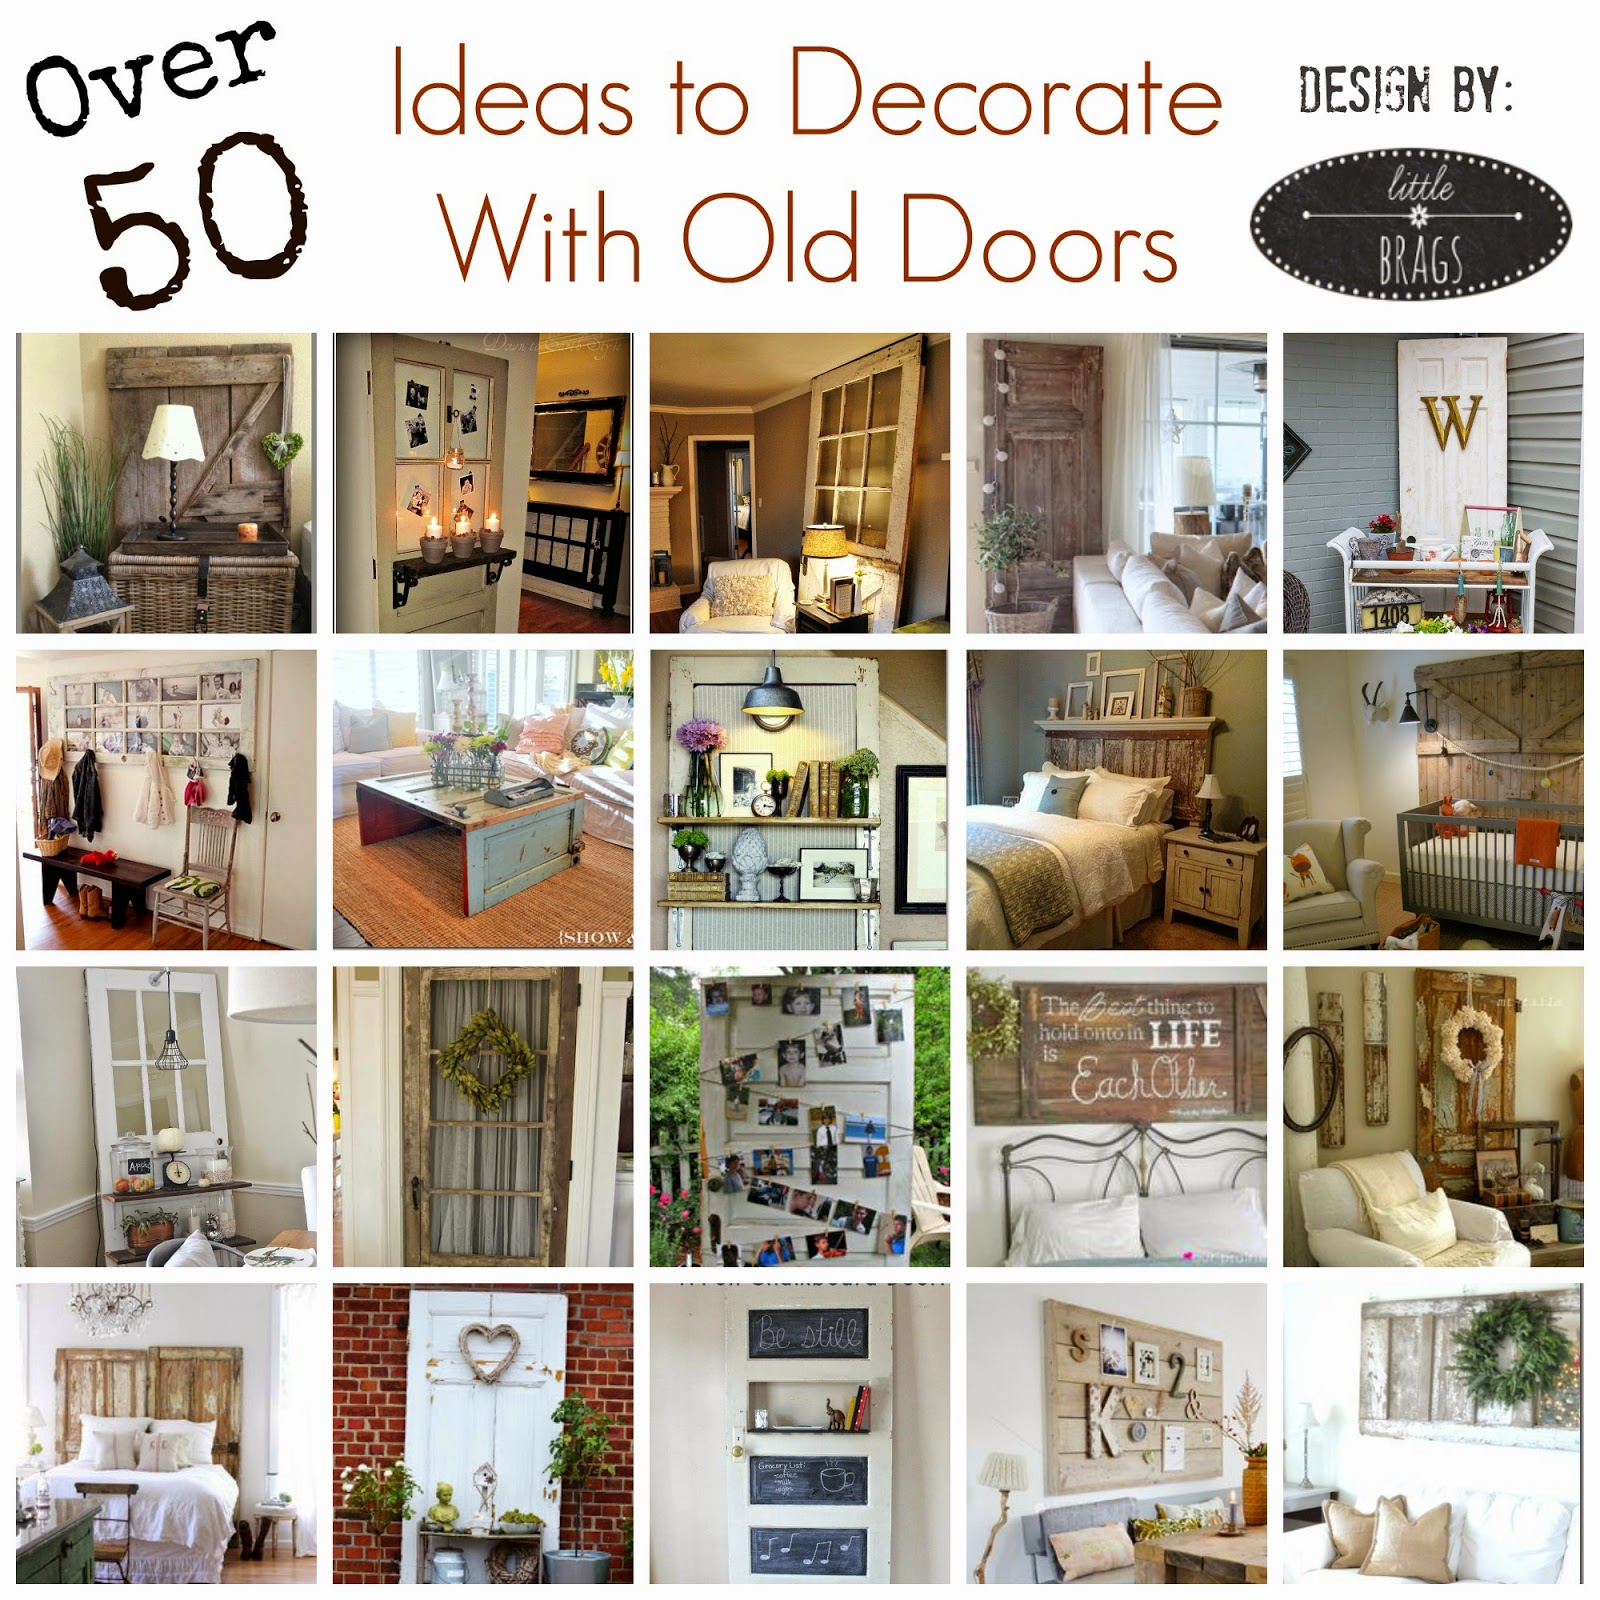 50+ Ideas to Decorate with Old Doors. Compiled by Little Brags